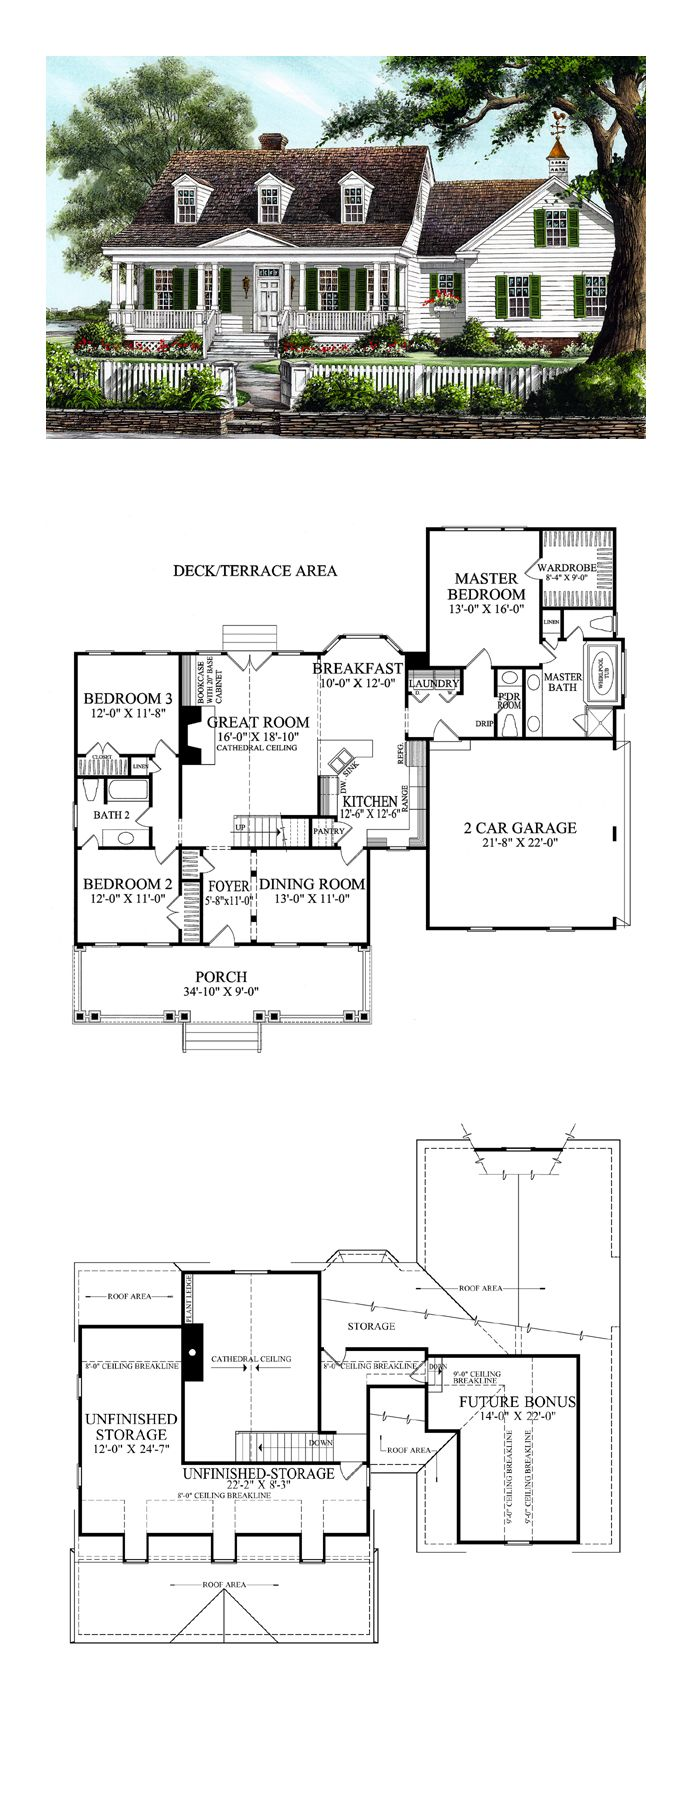 Farmhouse Style COOL House Plan ID: chp-47674 | Total Living Area: 1942 sq. ft., 3 bedrooms and 2.5 bathrooms. #farmhouseplan